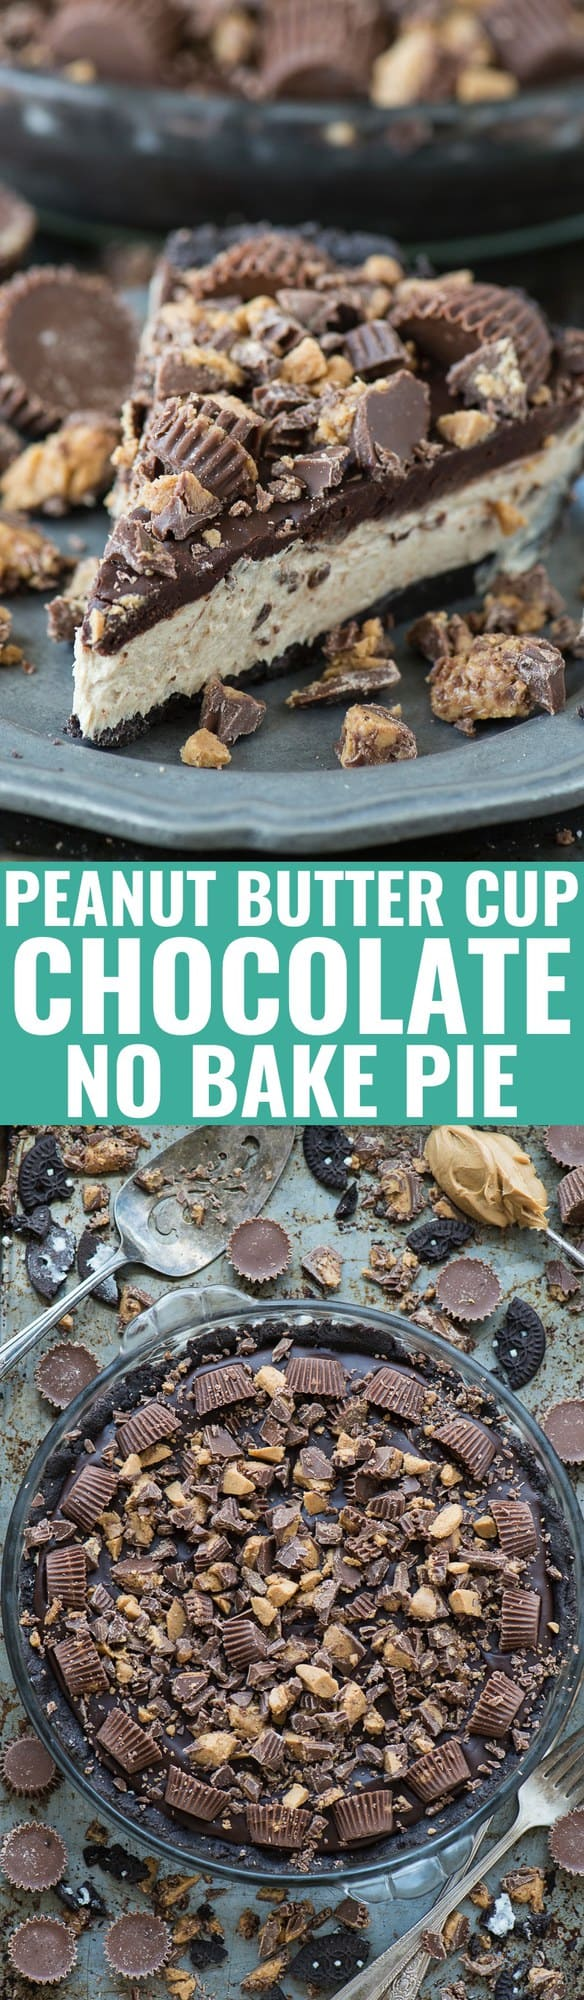 Peanut Butter Cup Chocolate Pie | The First Year